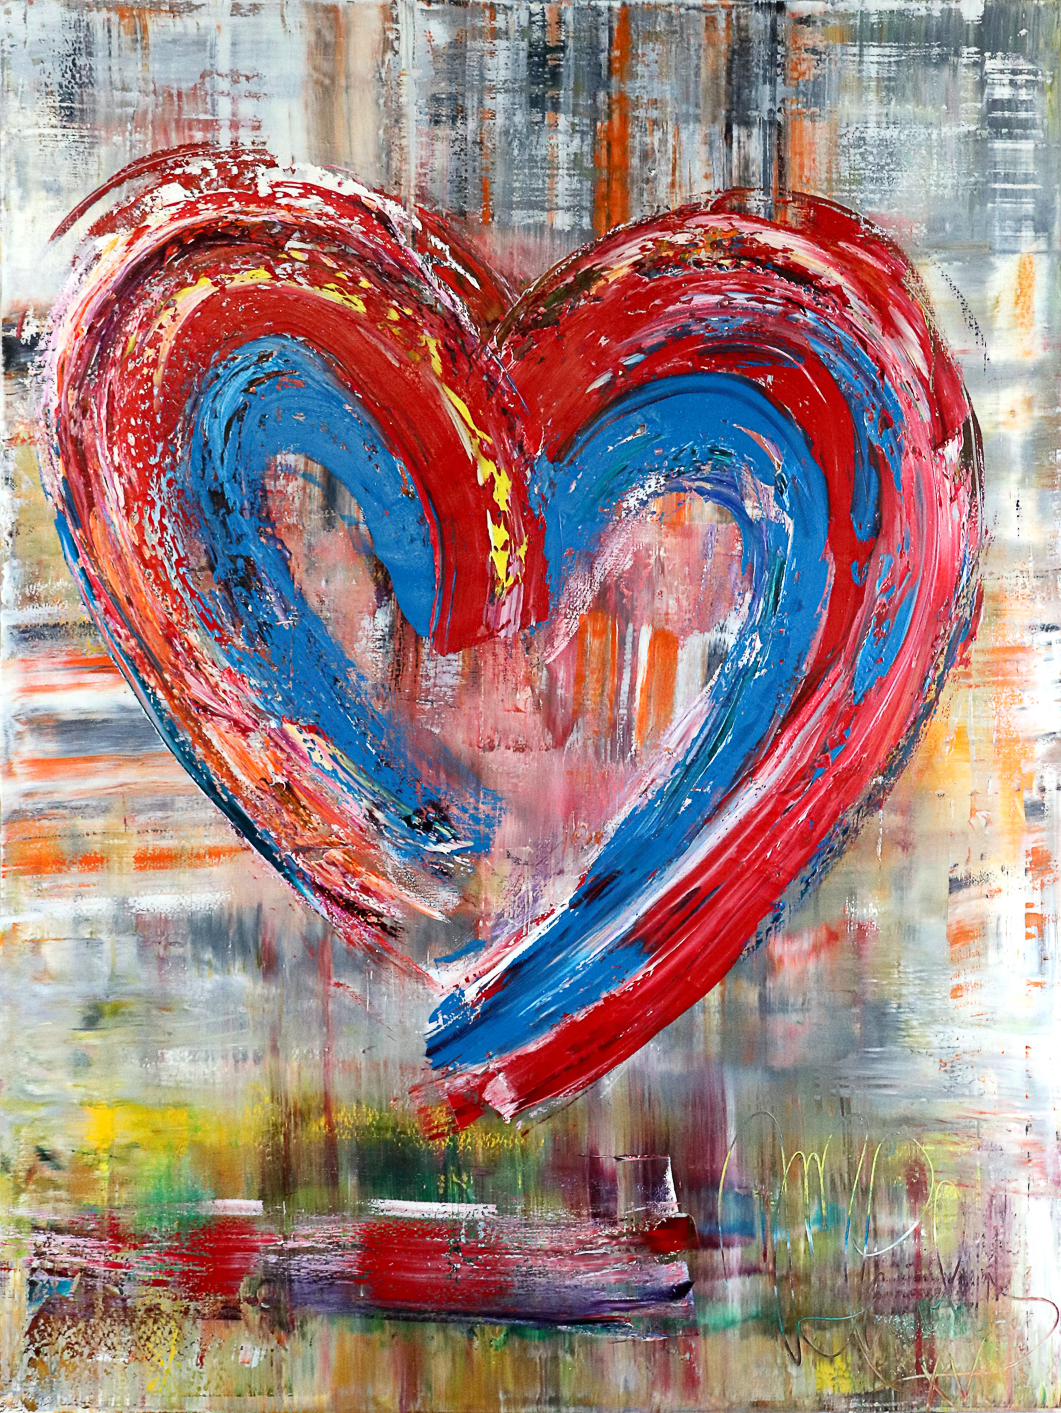 I Love You This Much_96x72_Oil on canvas_2016 (1 of 1).jpg